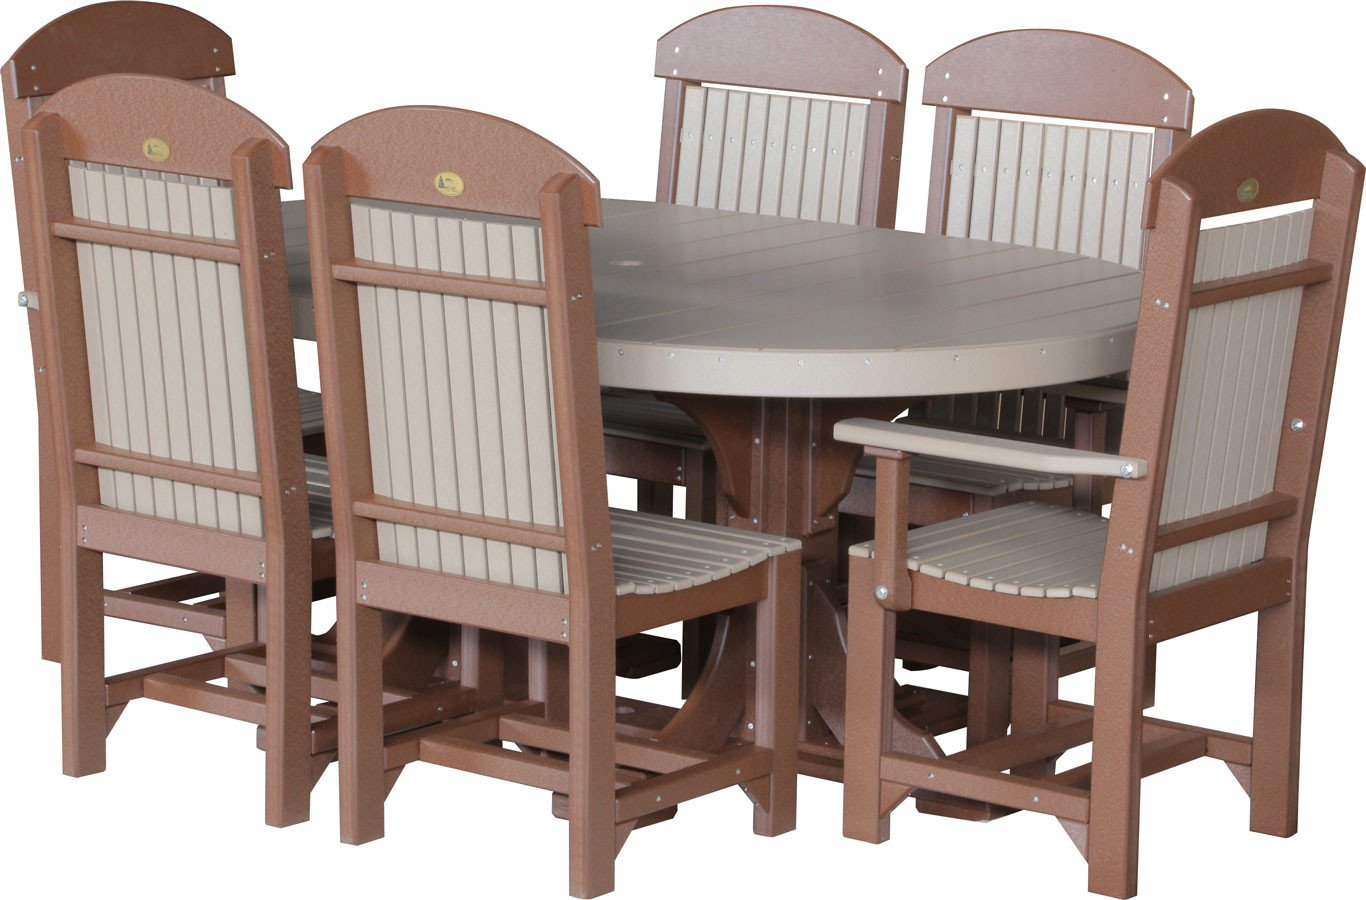 LuxCraft Recycled Plastic 4x6' Oval Table Set #2 with 2 Captain Chairs and 4 Regular Chairs - Color: Weatherwood & Chestnut Brown - kitchen-dining-room-furniture, kitchen-dining-room, dining-sets - 71hL%2BrY%2BgNL -